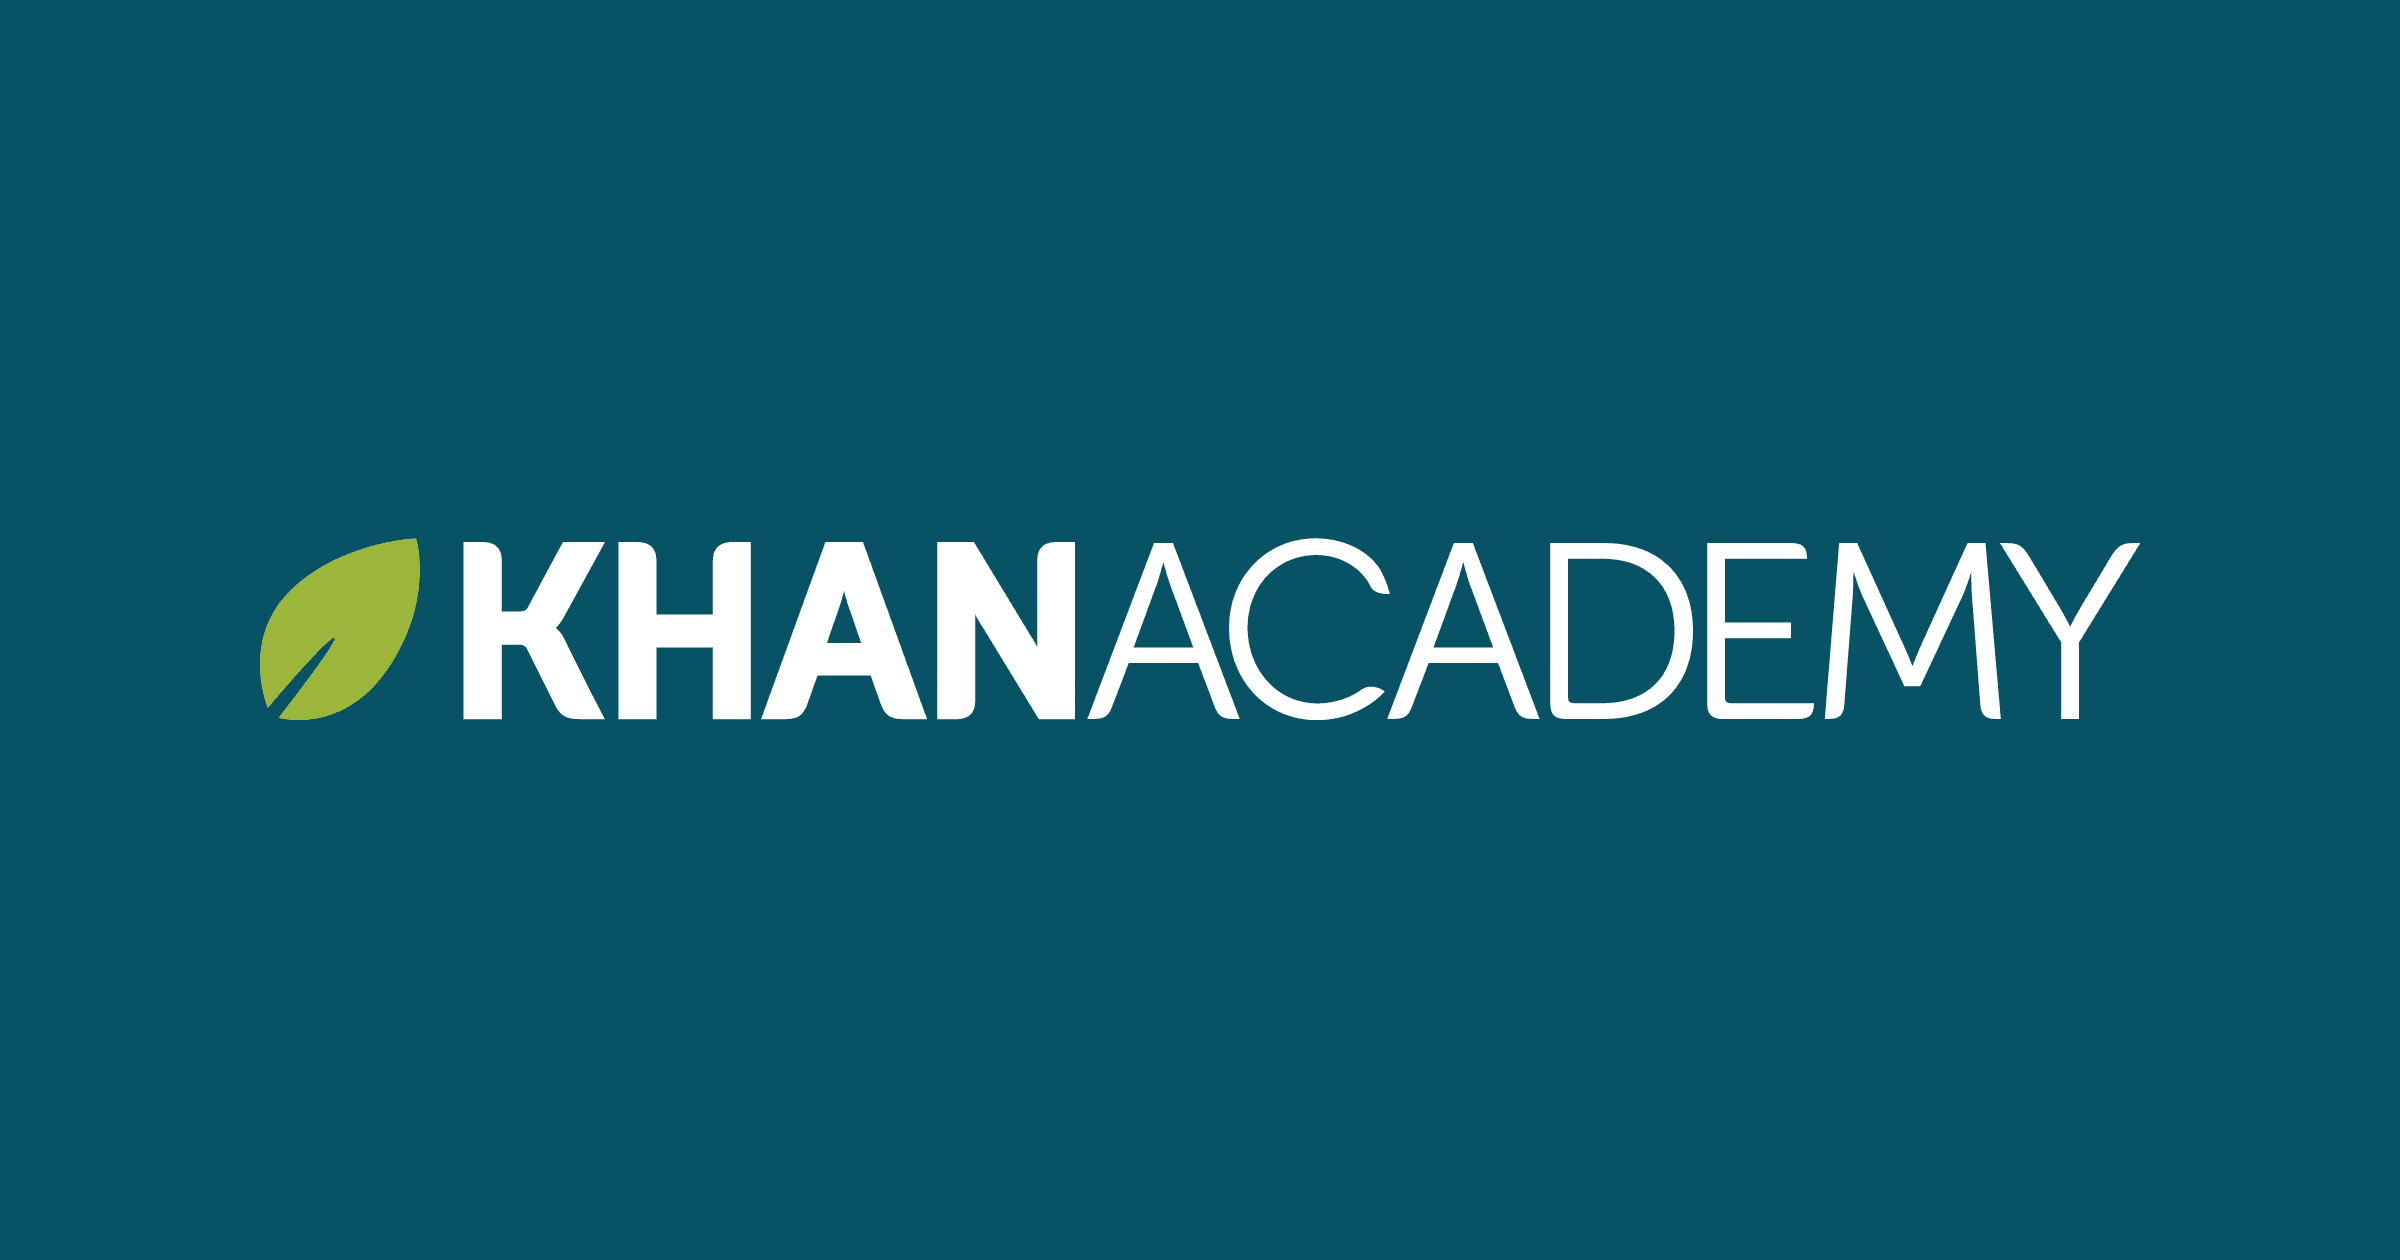 khan logo dark background Copie